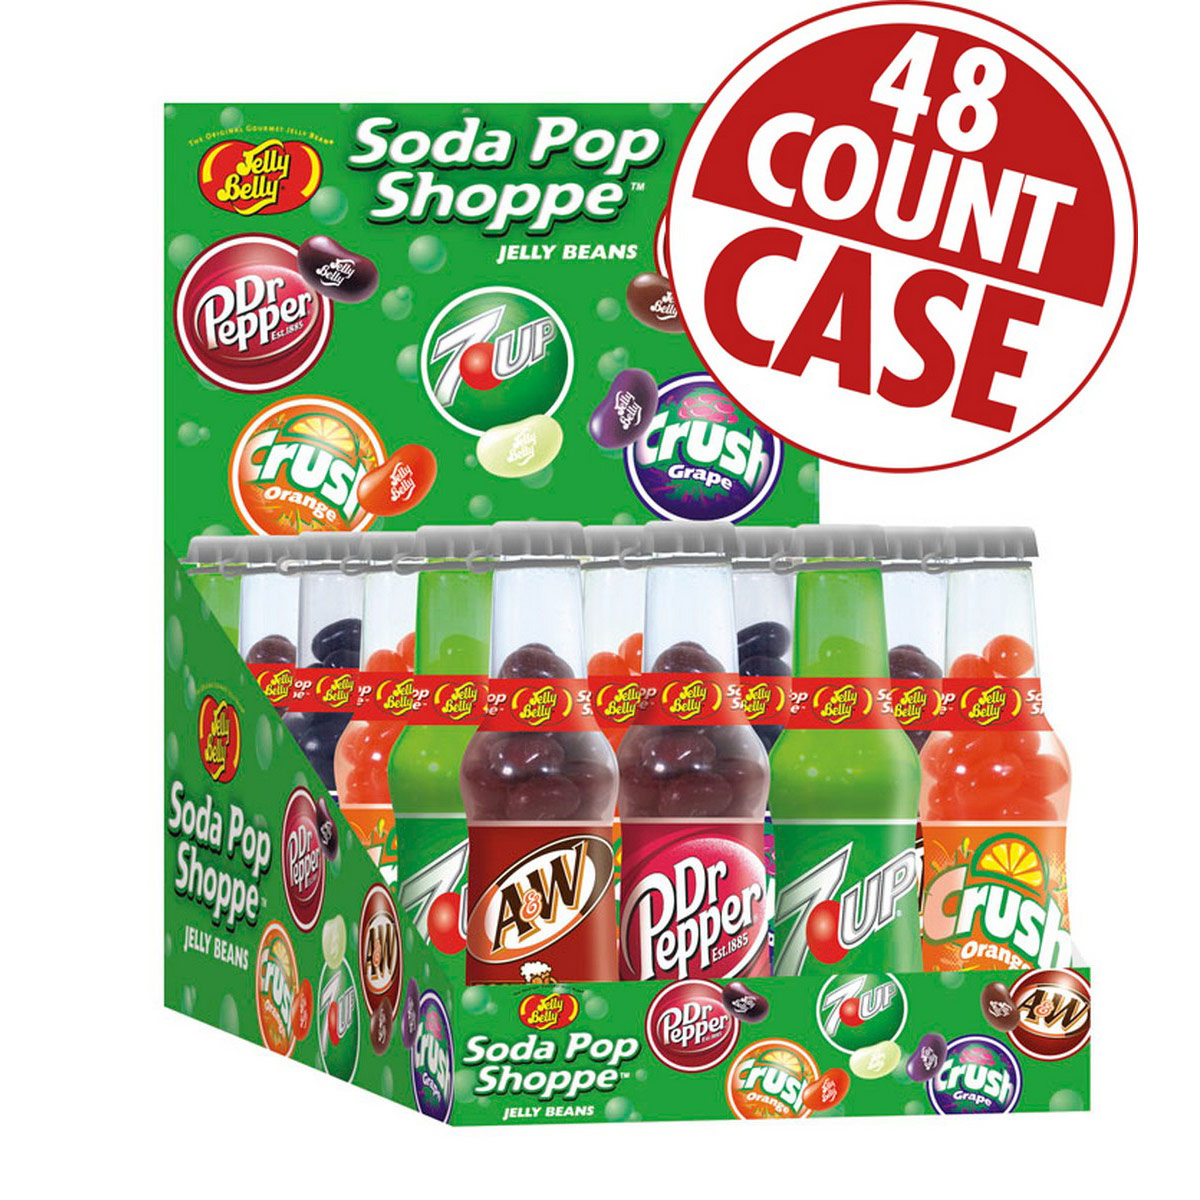 Soda Pop Shoppe<sup>®</sup> Jelly Beans - 1.5 oz. bottles - 48-Count Case